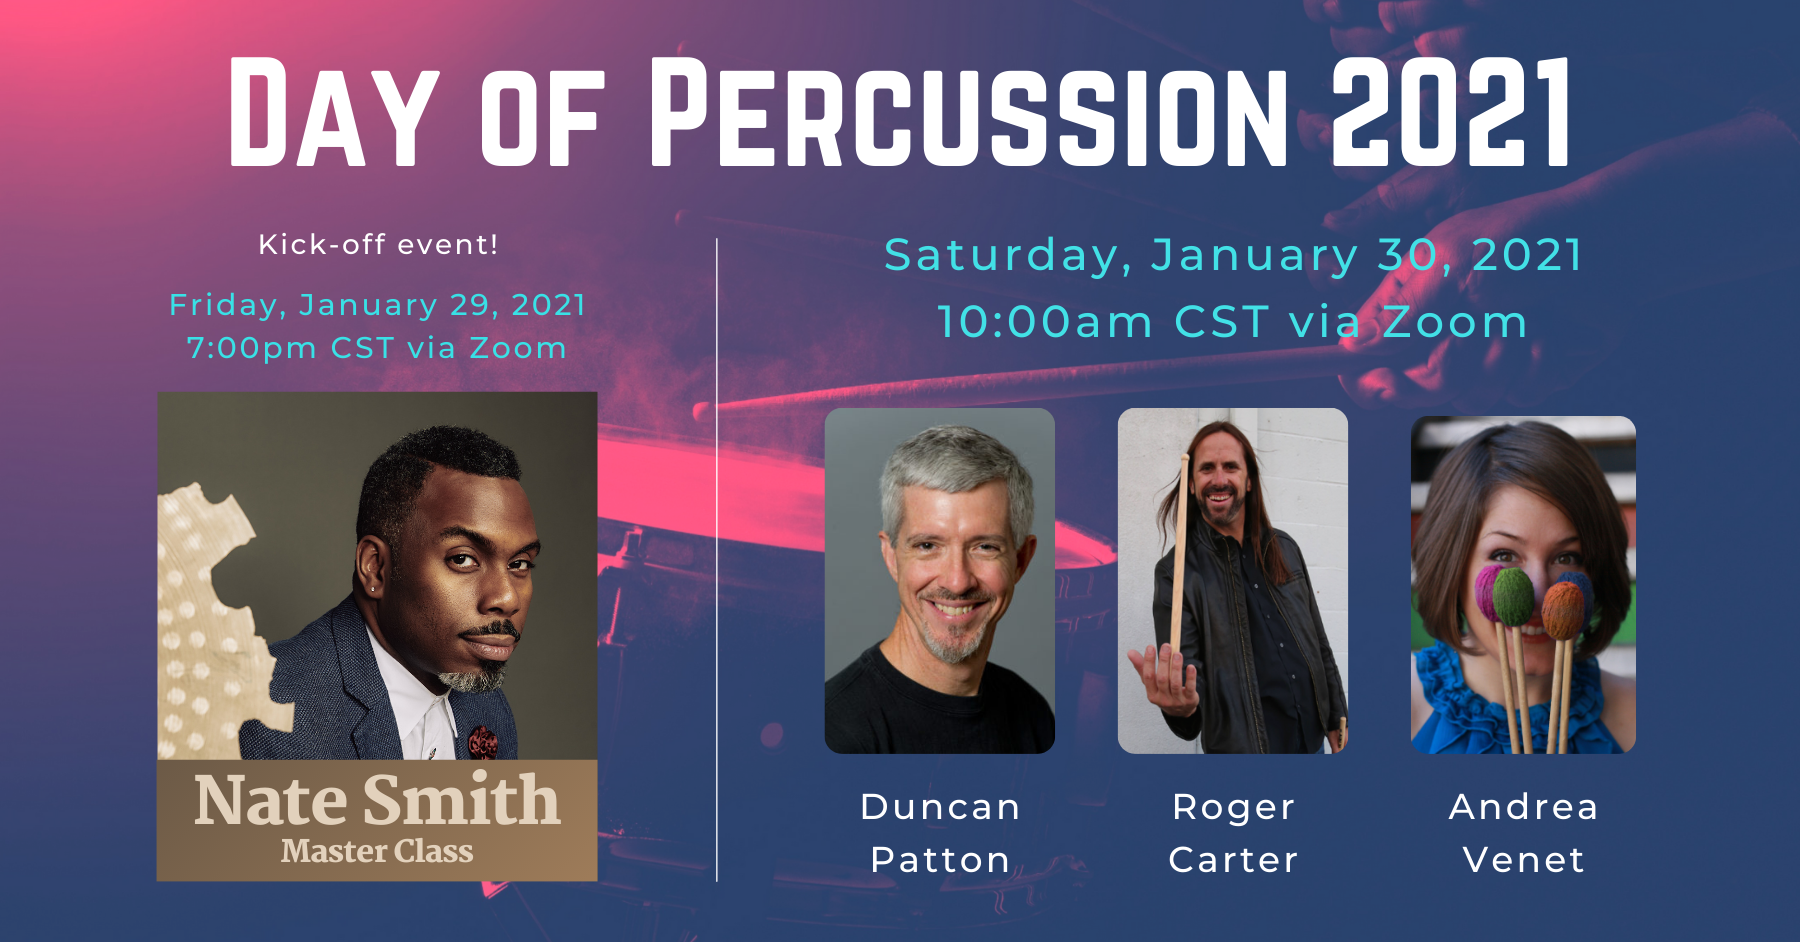 Hubspot - Day of Percussion 2021 - 1800 X 942